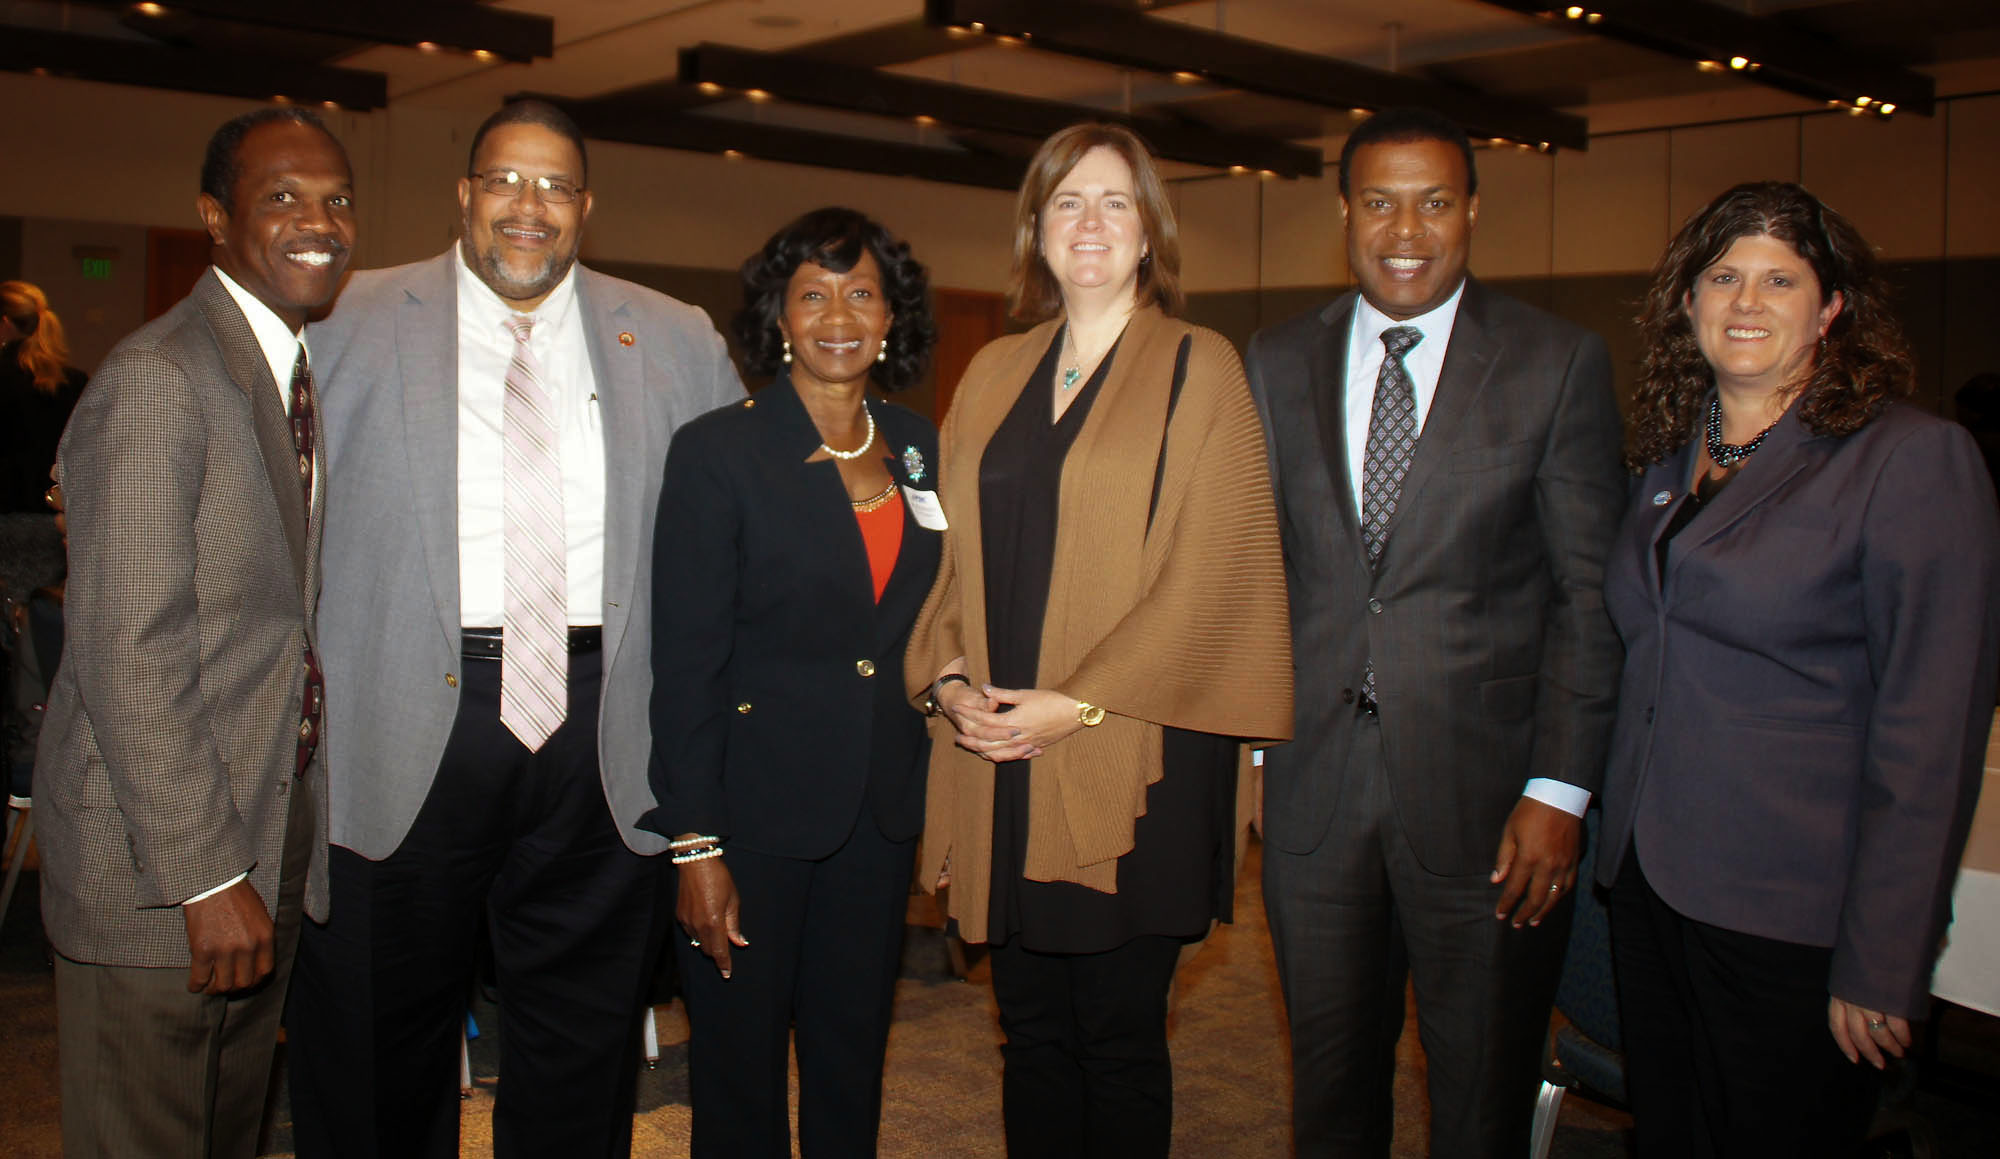 Mayors of Norfolk, Portsmouth and Hampton, and HRPDC Chair with Anti-Poverty Forum Speakers